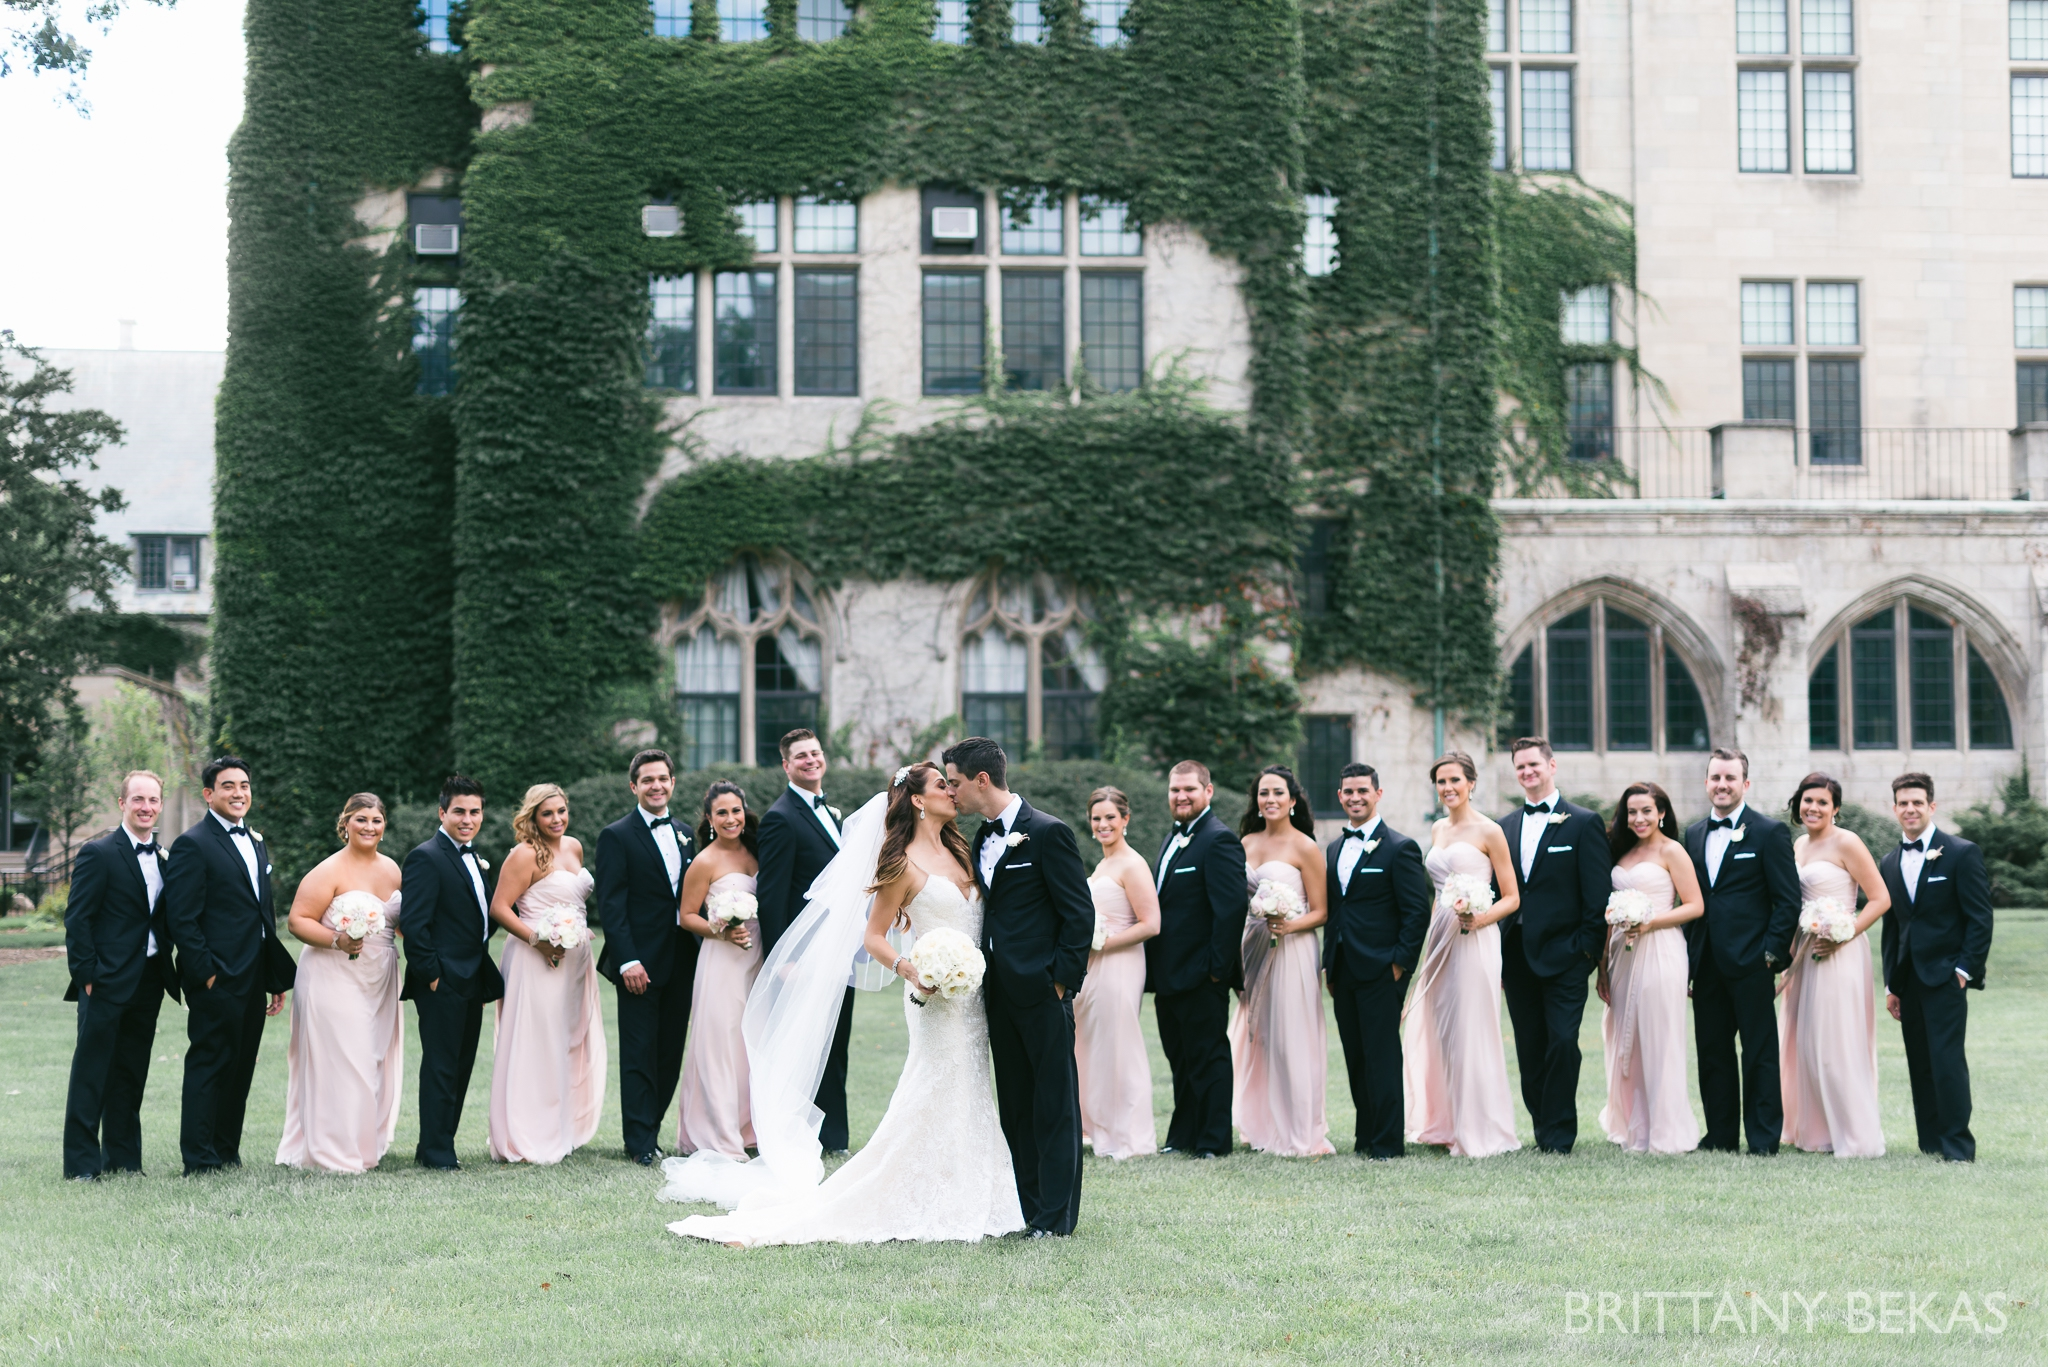 Chicago Wedding Photos St Edmunds + Concorde Banquets- Brittany Bekas Photography_0021